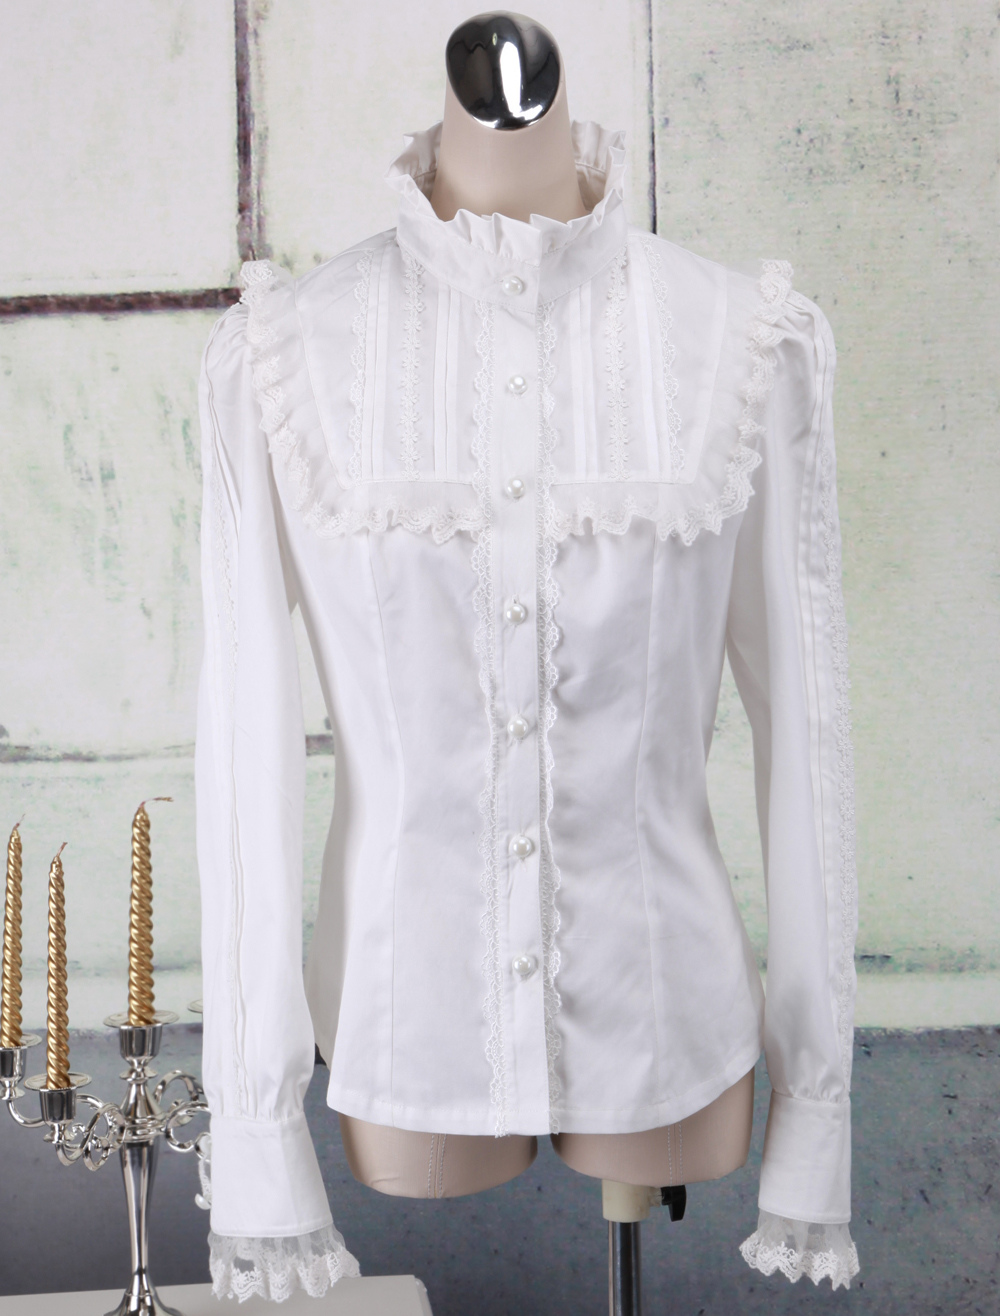 Buy White Cotton Lolita Blouse Long Sleeves Lace Trim Stand Collar for $57.99 in Milanoo store